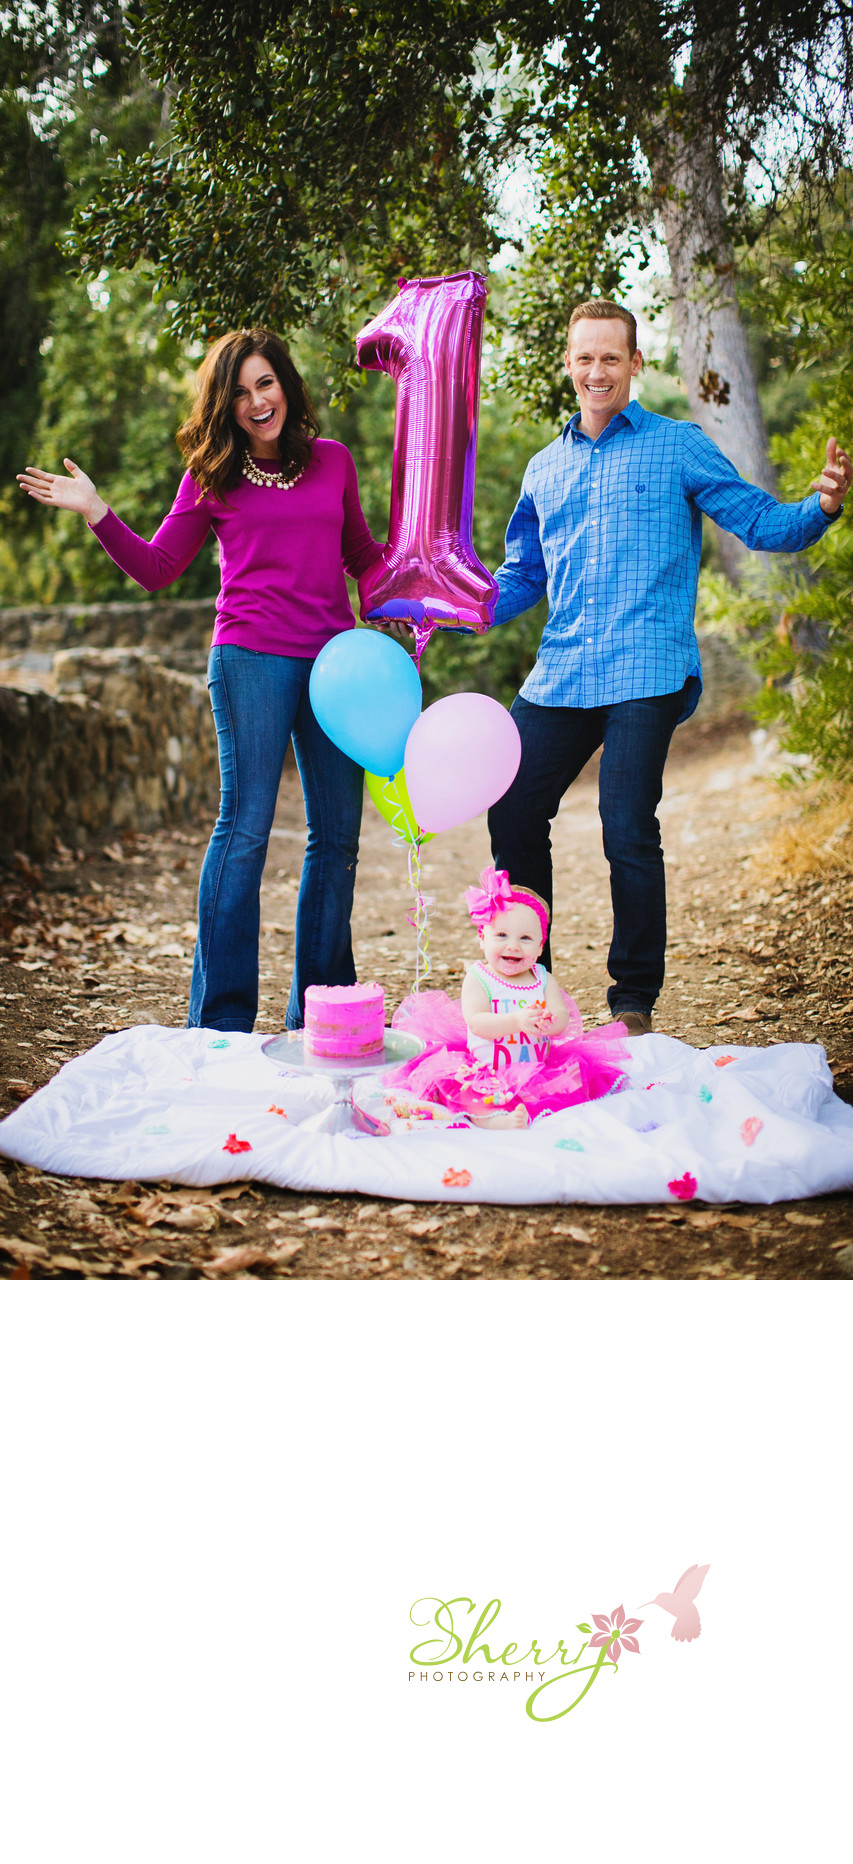 Jen Rylan and Leighton's first birthday